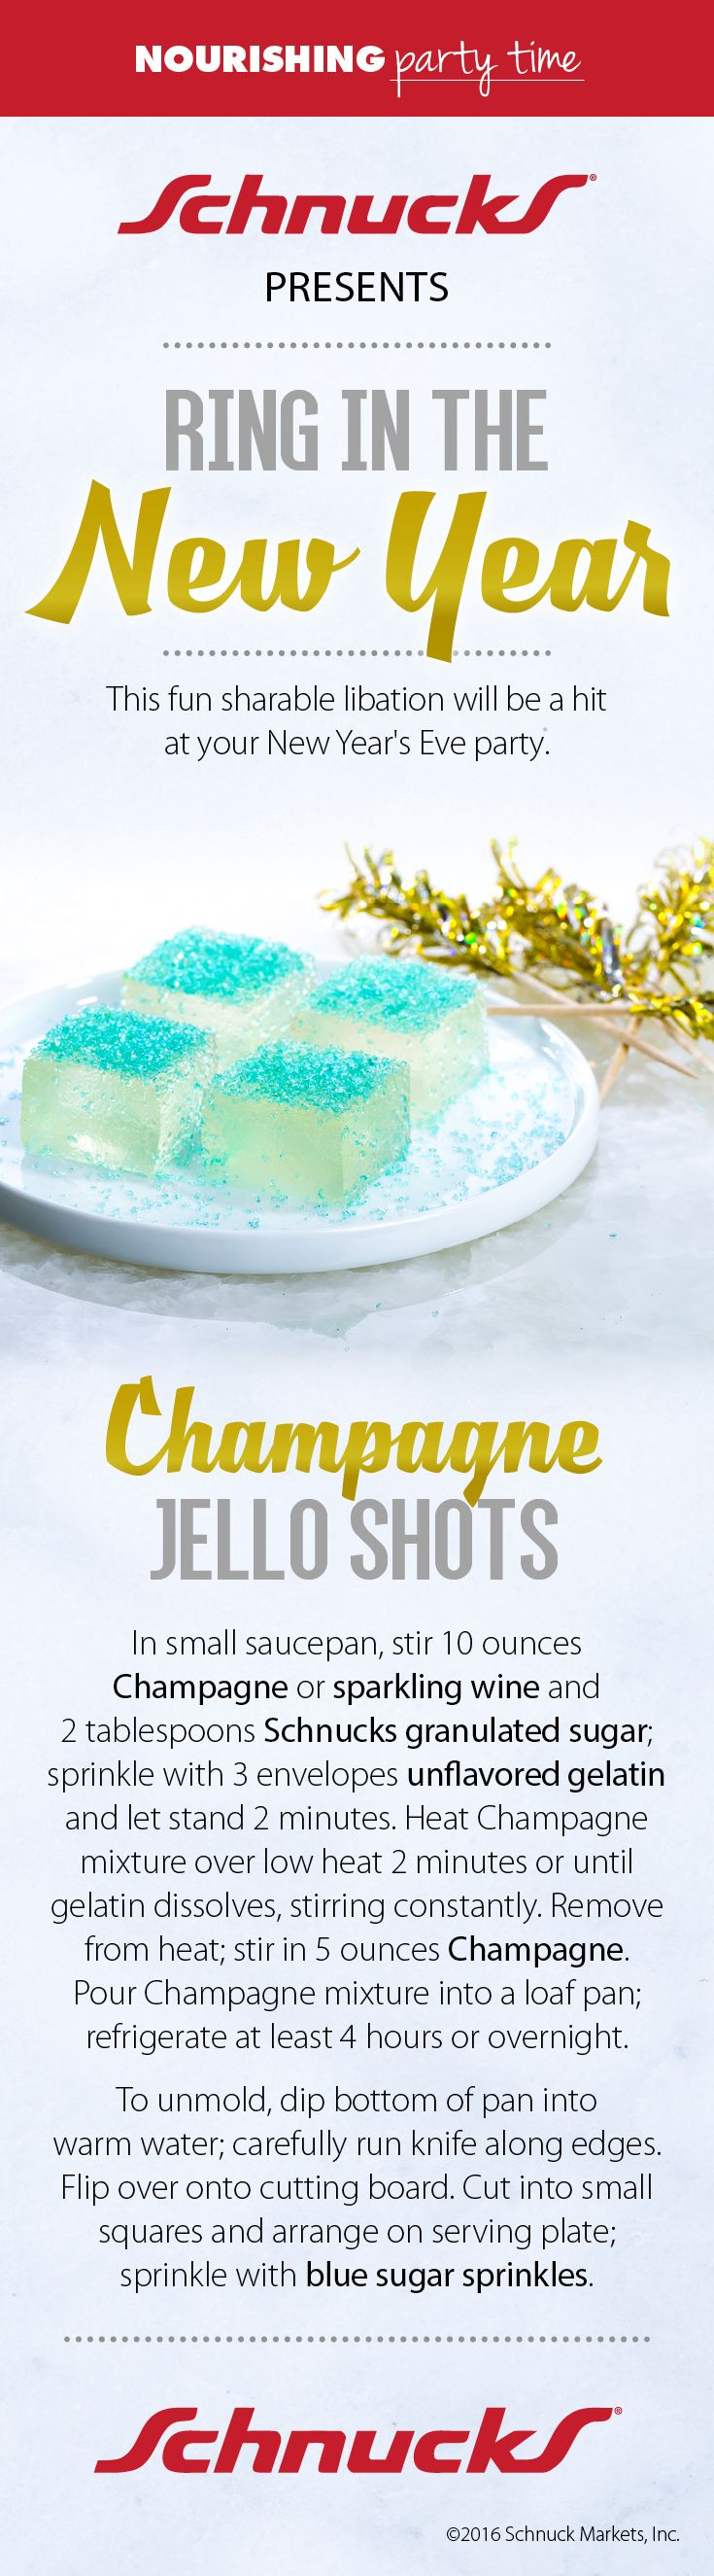 Champagne Jello Shots | Schnucks